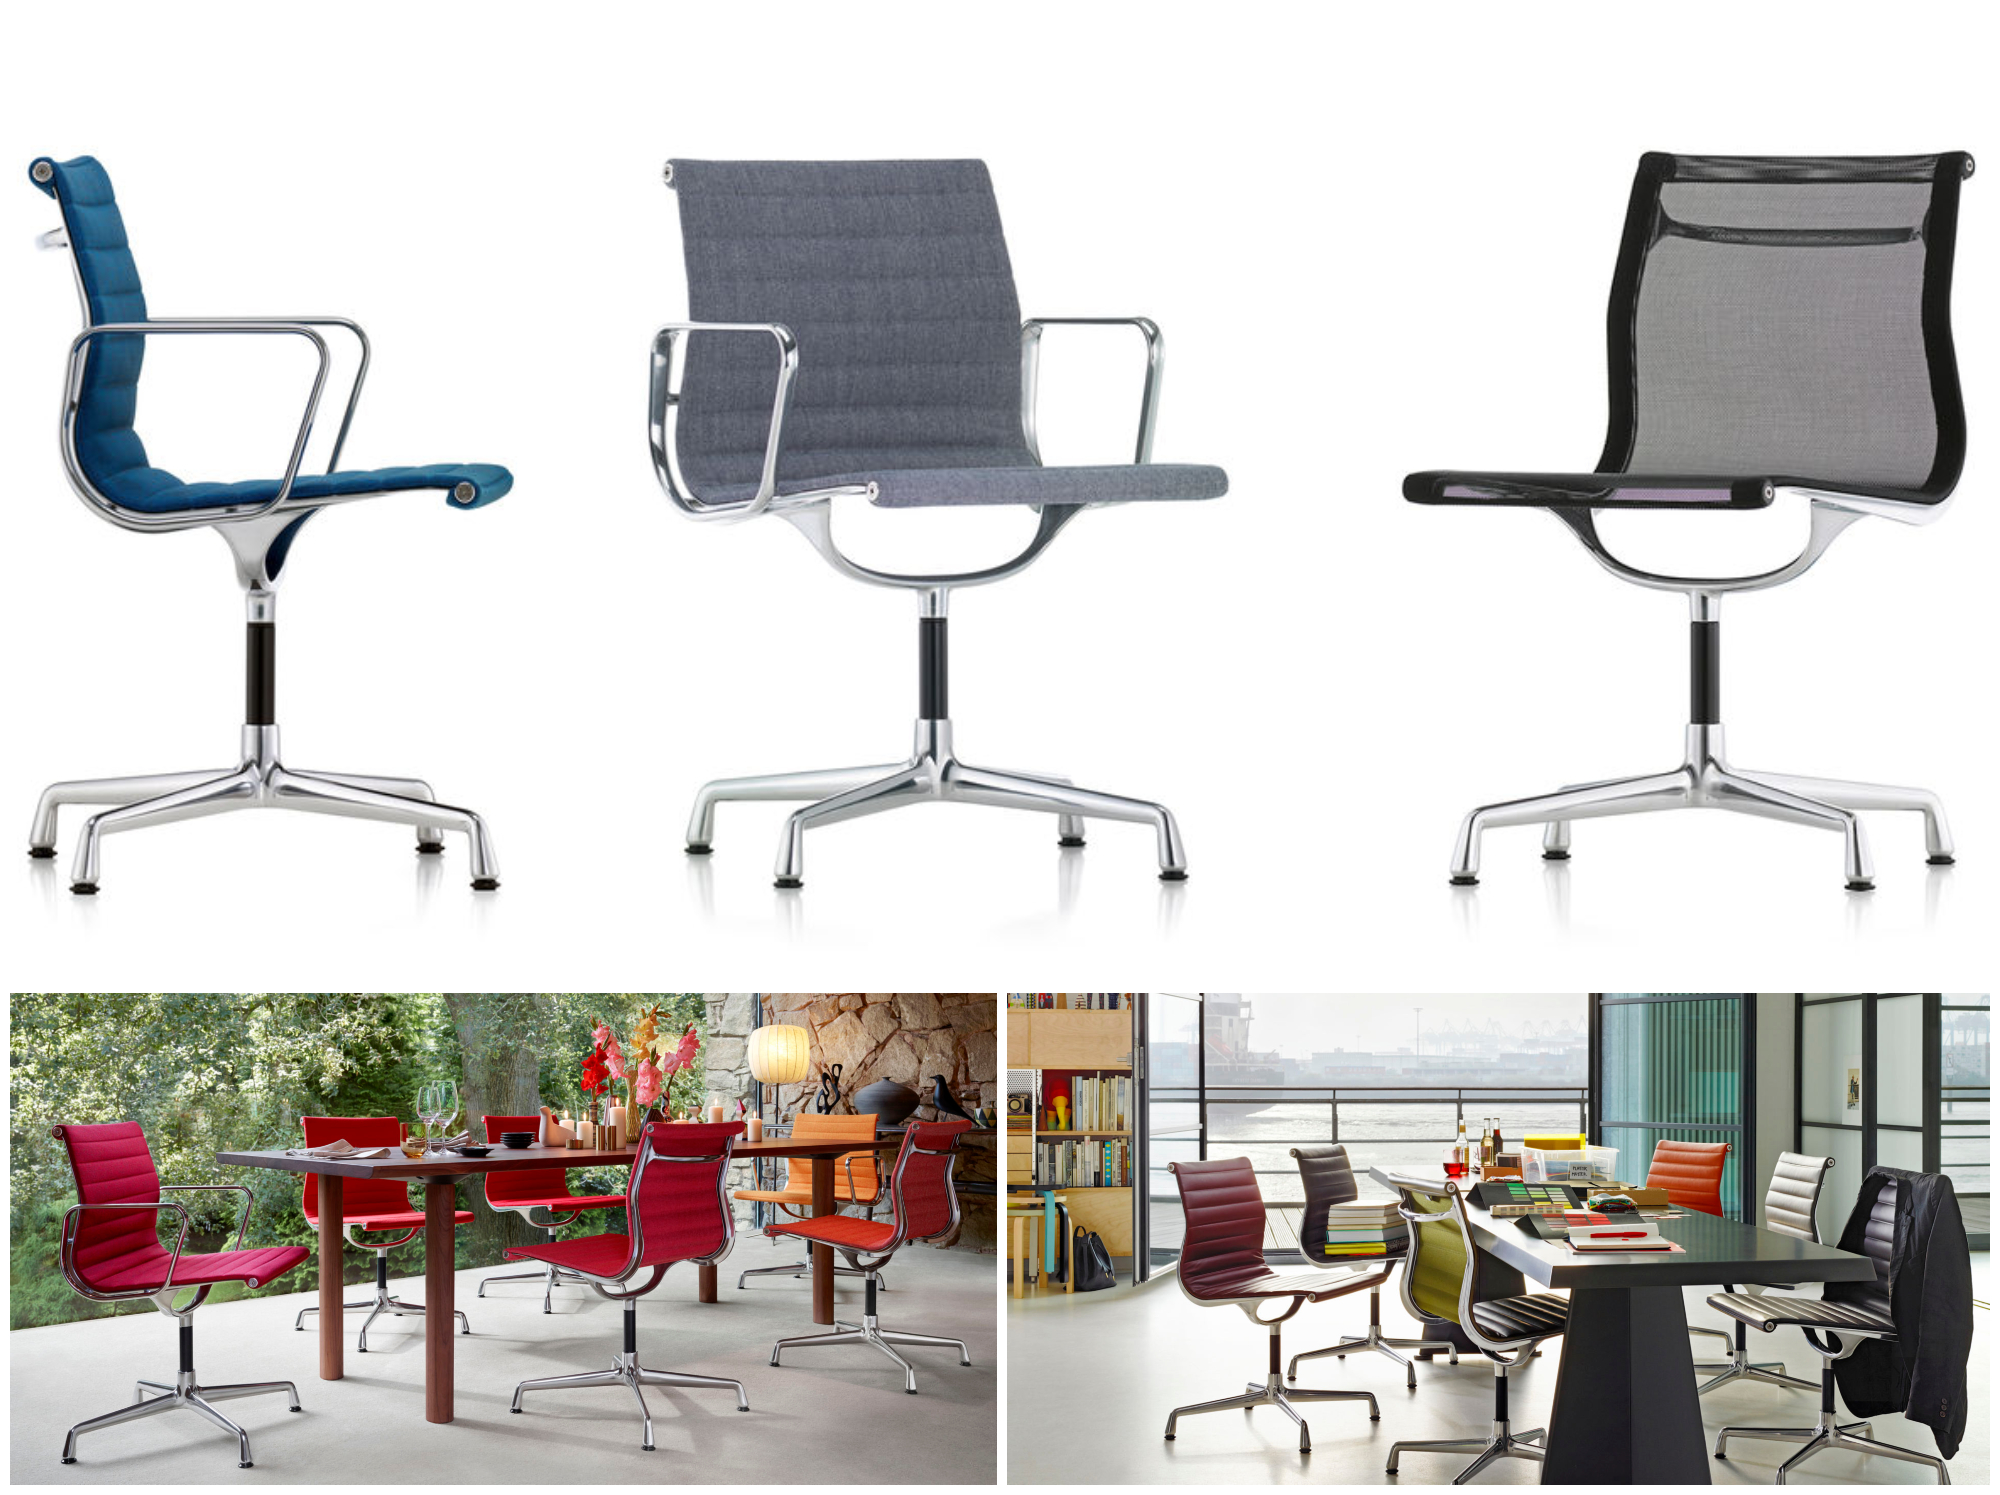 ALUMINIUM CHAIRS - CHARLES & RAY EAMES, 1958  THE ALUMINIUM CHAIR IS ONE OF THE GREAT FURNITURE DESIGNS OF THE TWENTIETH CENTURY. CHARLES AND RAY EAMES CONCEIVED AND DEVELOPED THIS CHAIR IN 1958 FOR THE PRIVATE RESIDENCE OF AN ART COLLECTOR IN COLUMBUS, INDIANA (USA).